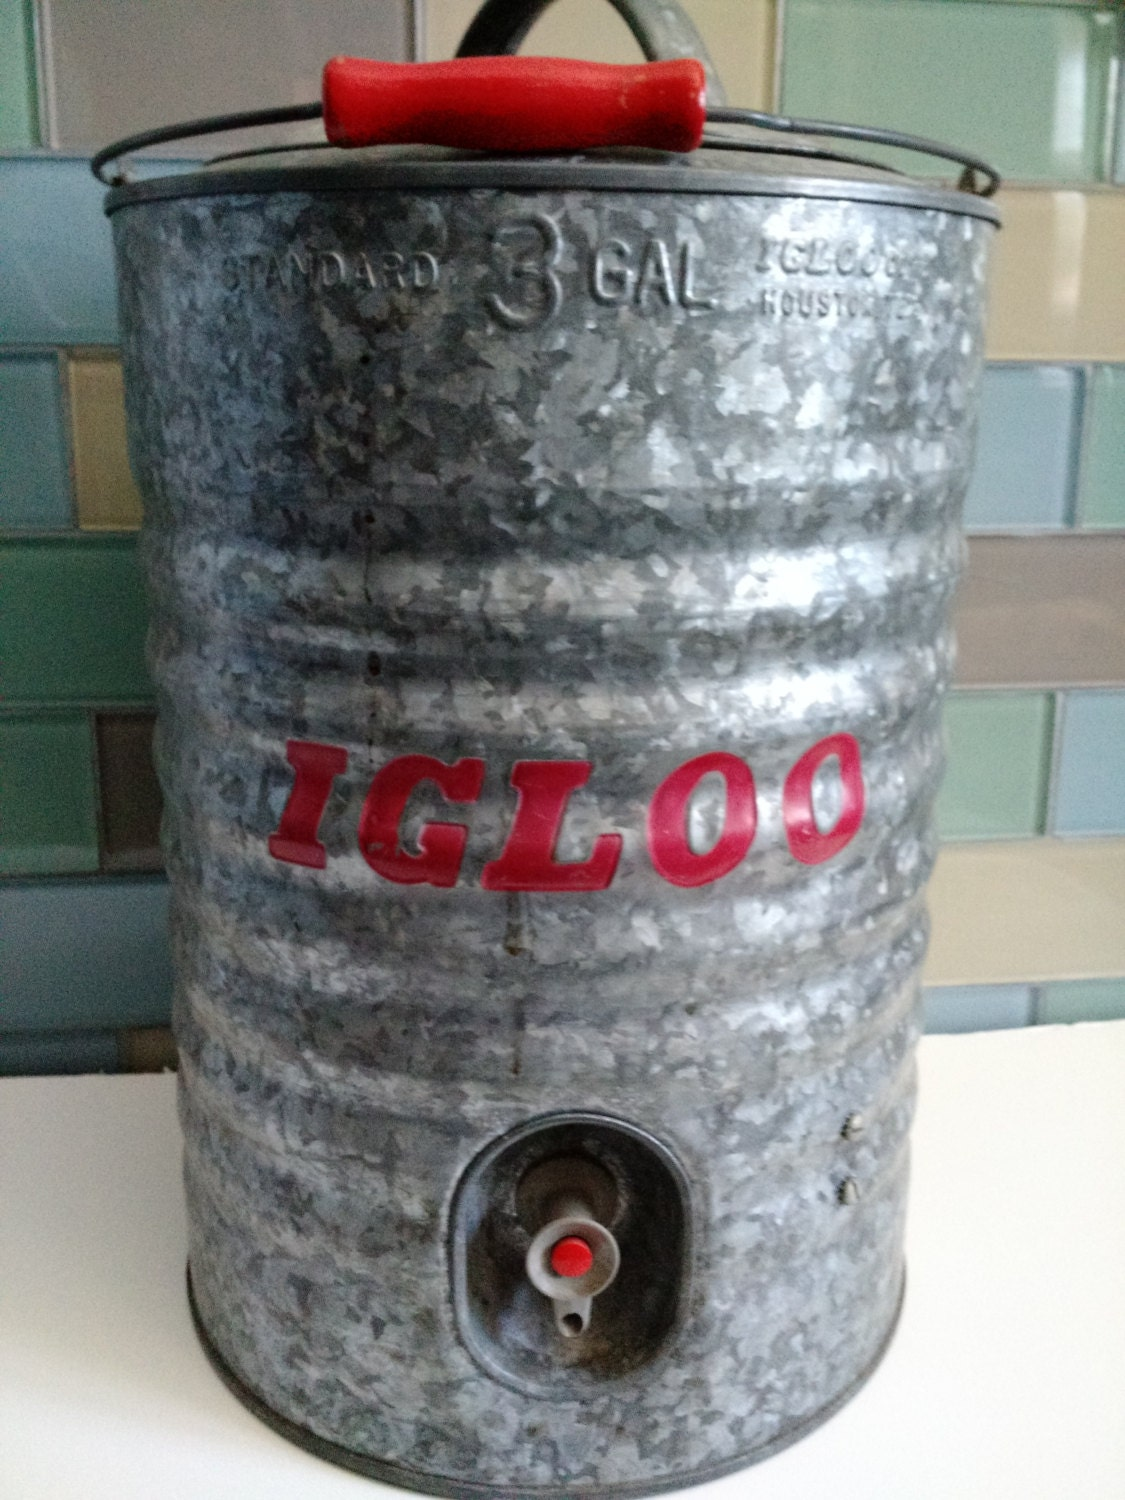 Vintage igloo 3 gallon water cooler by decotraveler on etsy - Igloo vintage ...